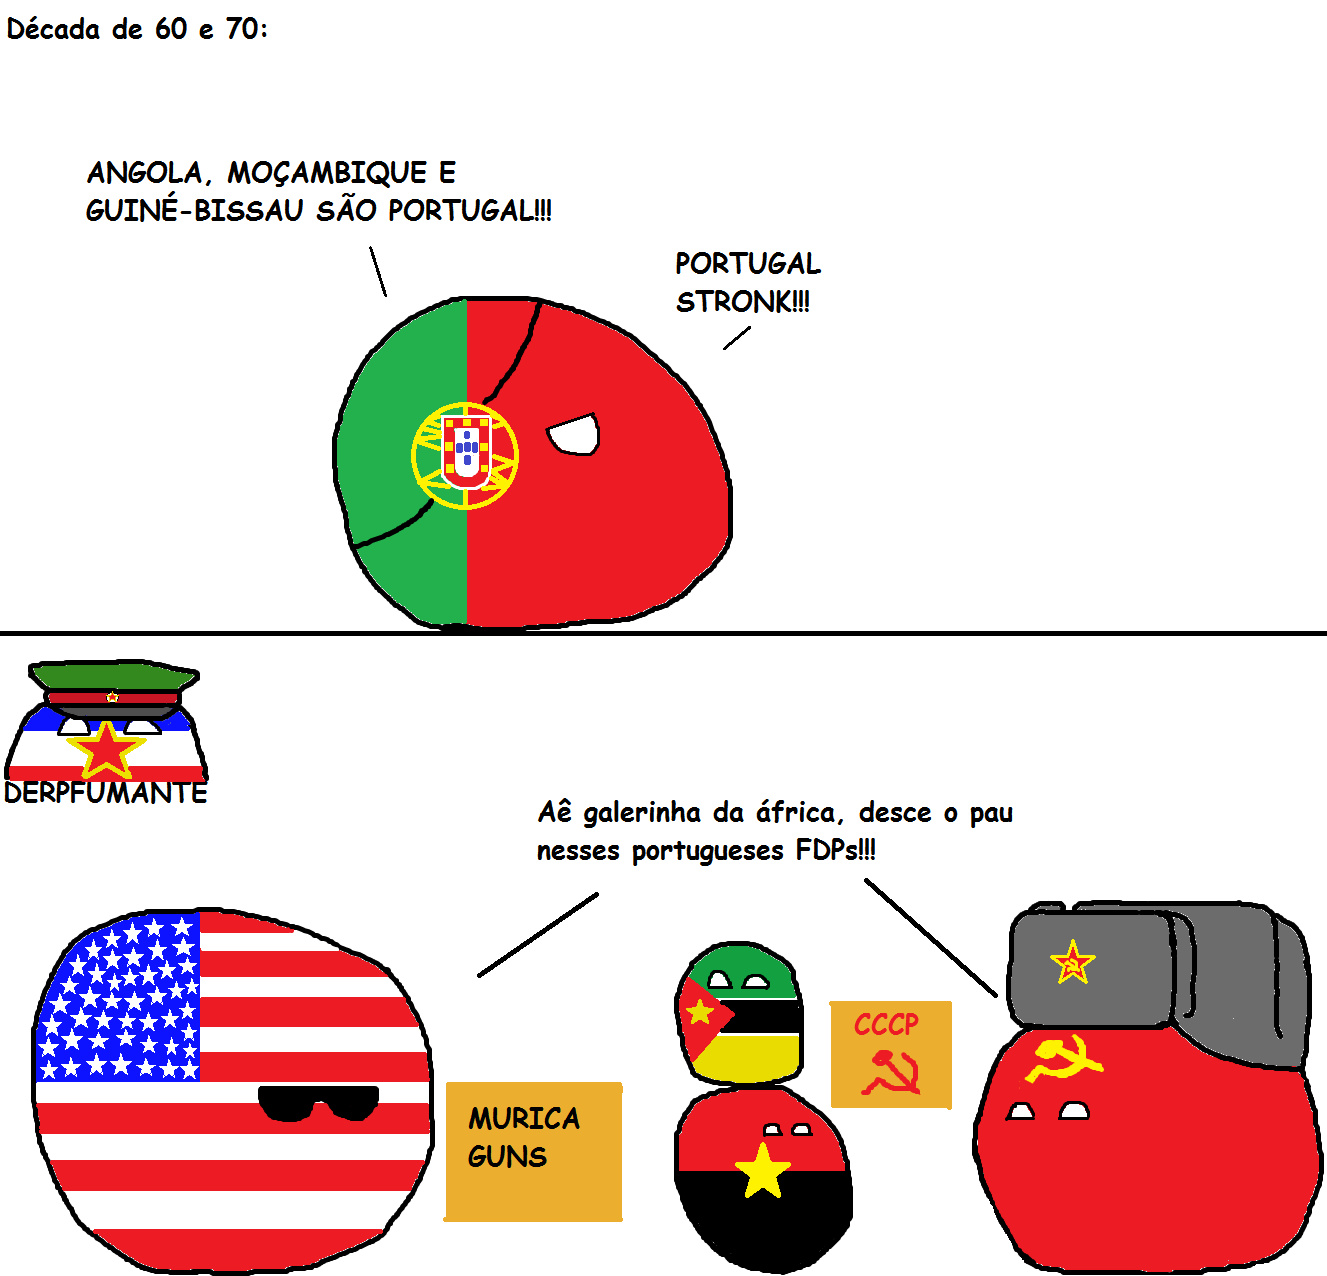 Guerra do ultramar 1961-1974 - meme